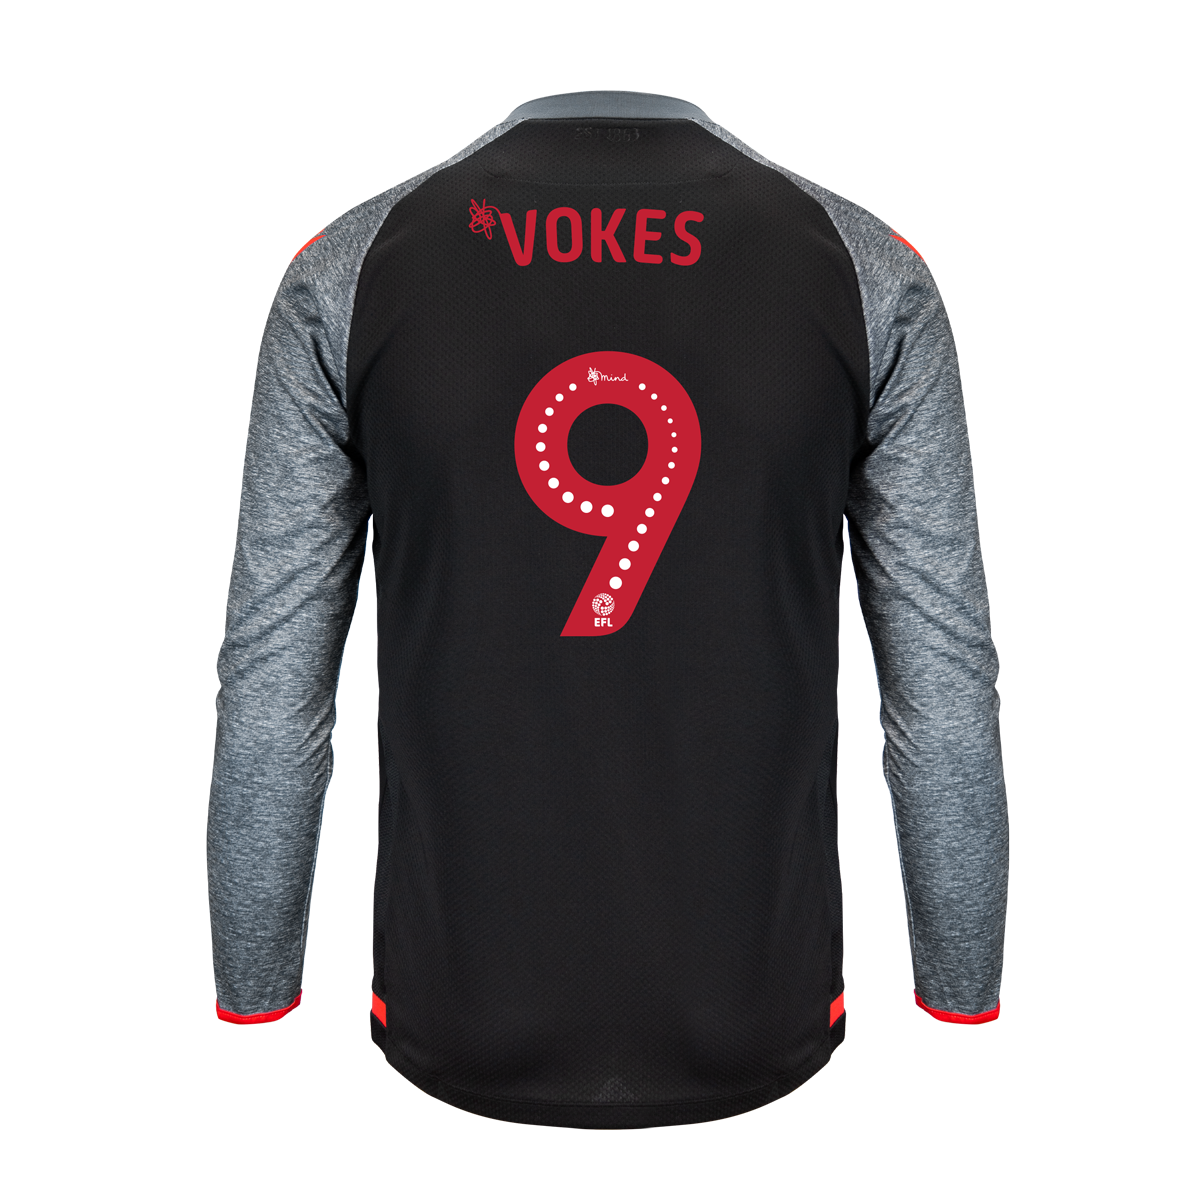 2019/20 Adult Away LS Shirt - Vokes